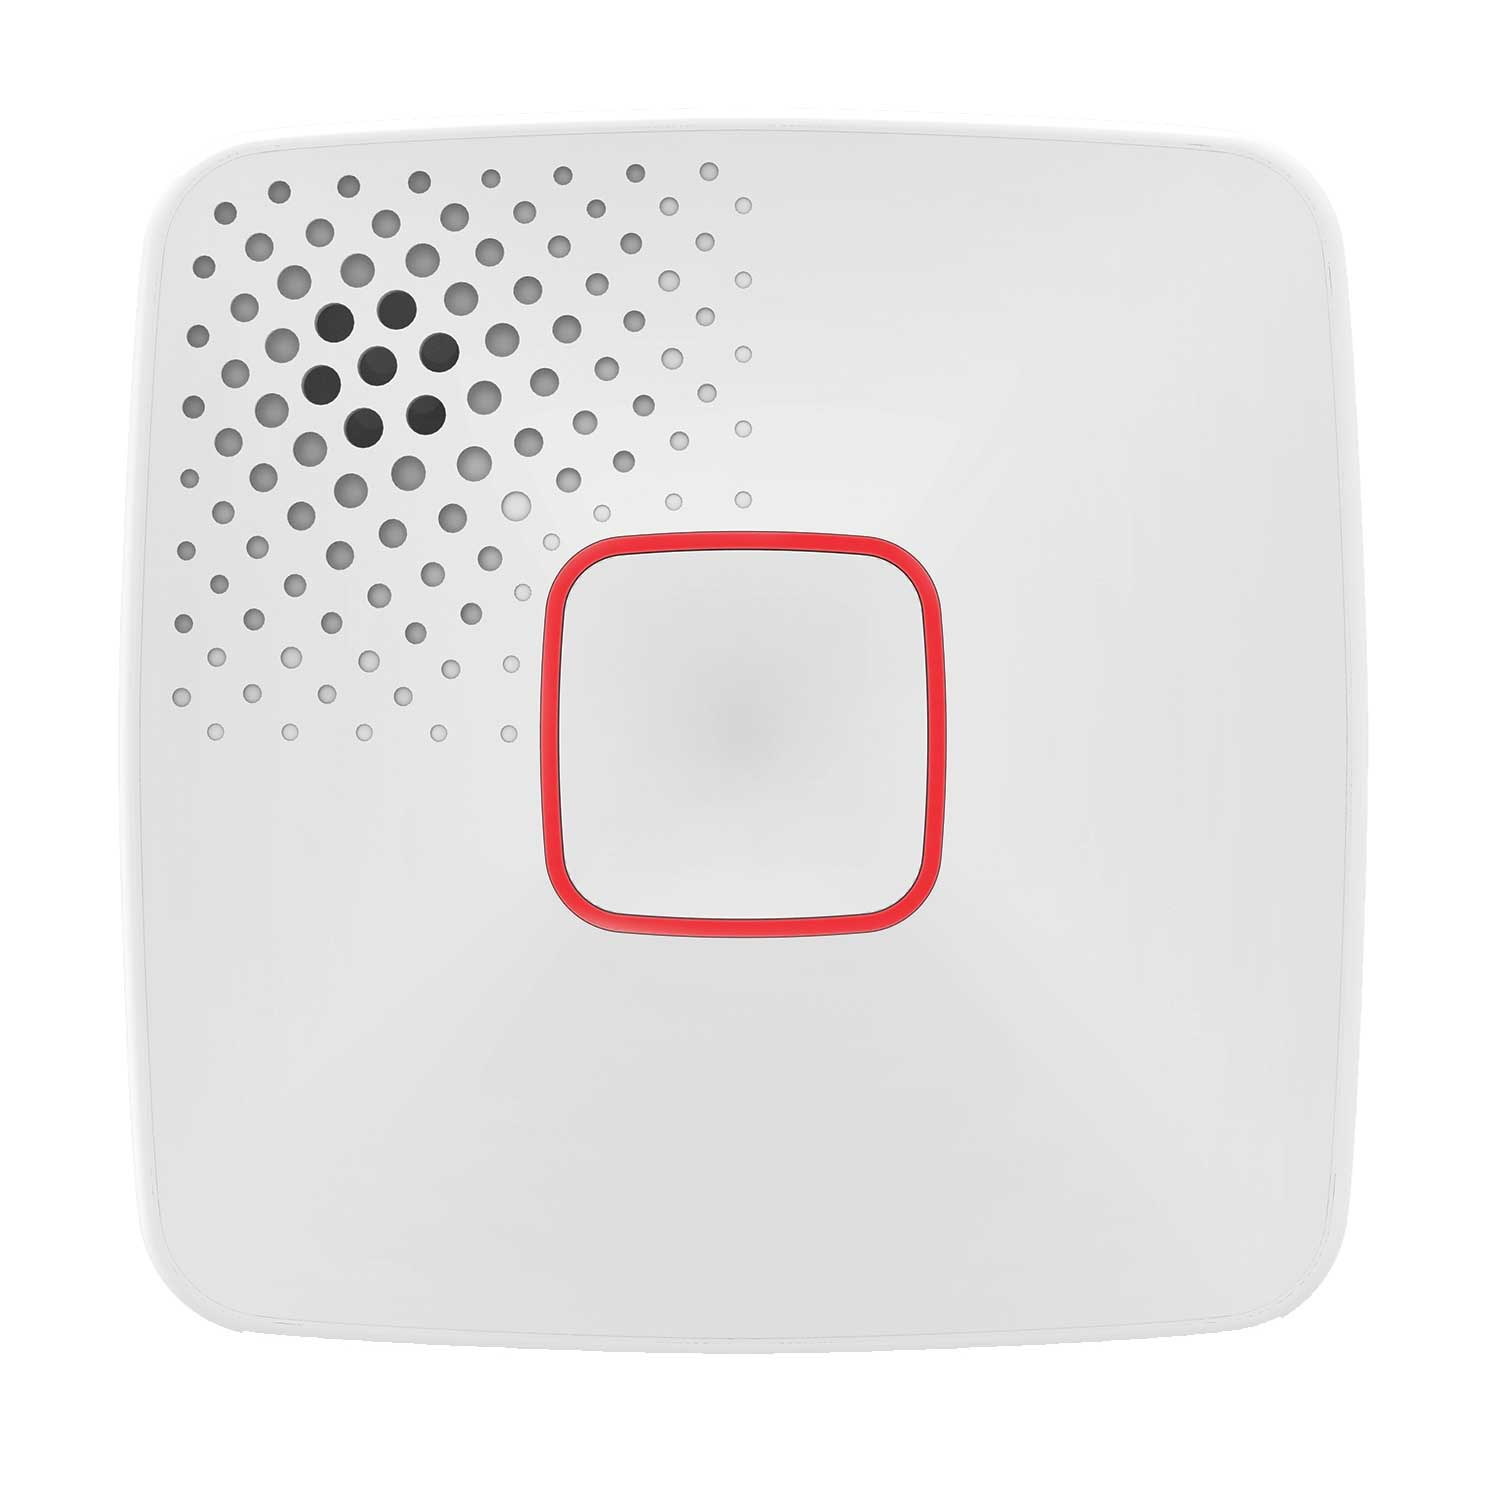 First Alert Onelink Hardwired Wi-Fi Smoke & Carbon Monoxide Alarm with Battery Backup, HomeKit-enabled - AC10-500